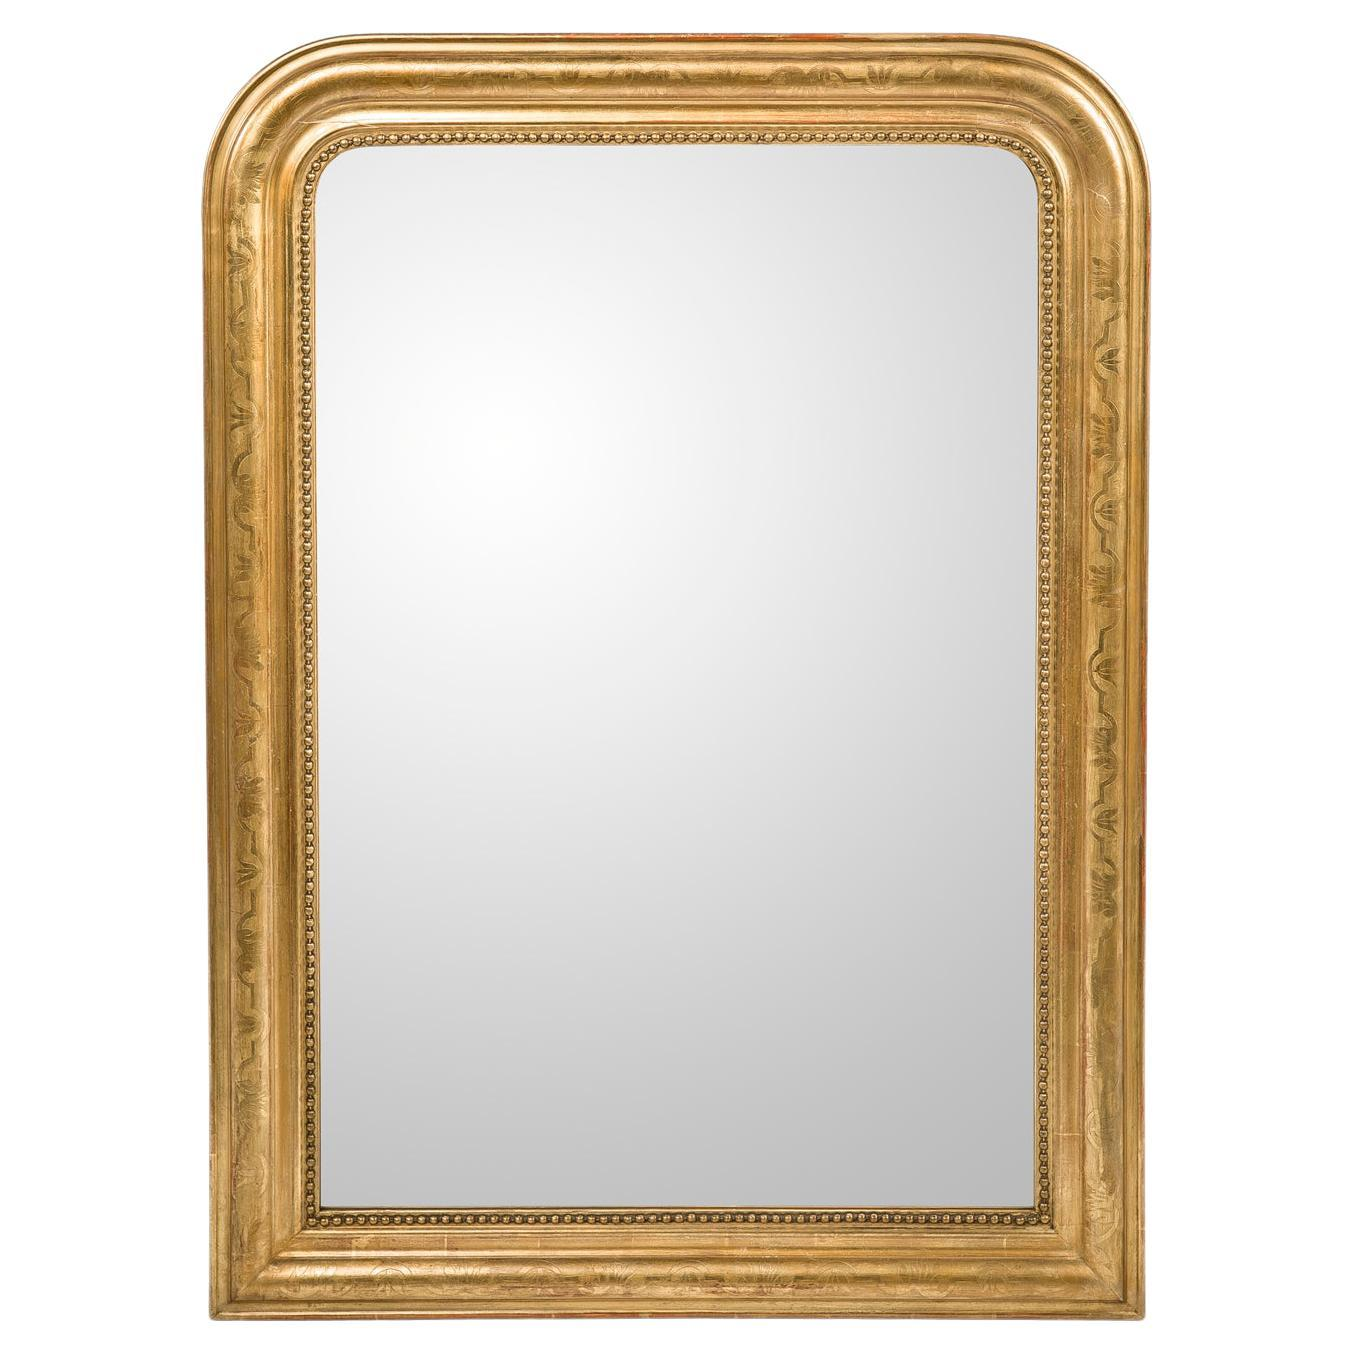 Antique 19th-Century French Gold Leaf Gilt Louis Philippe Mirror